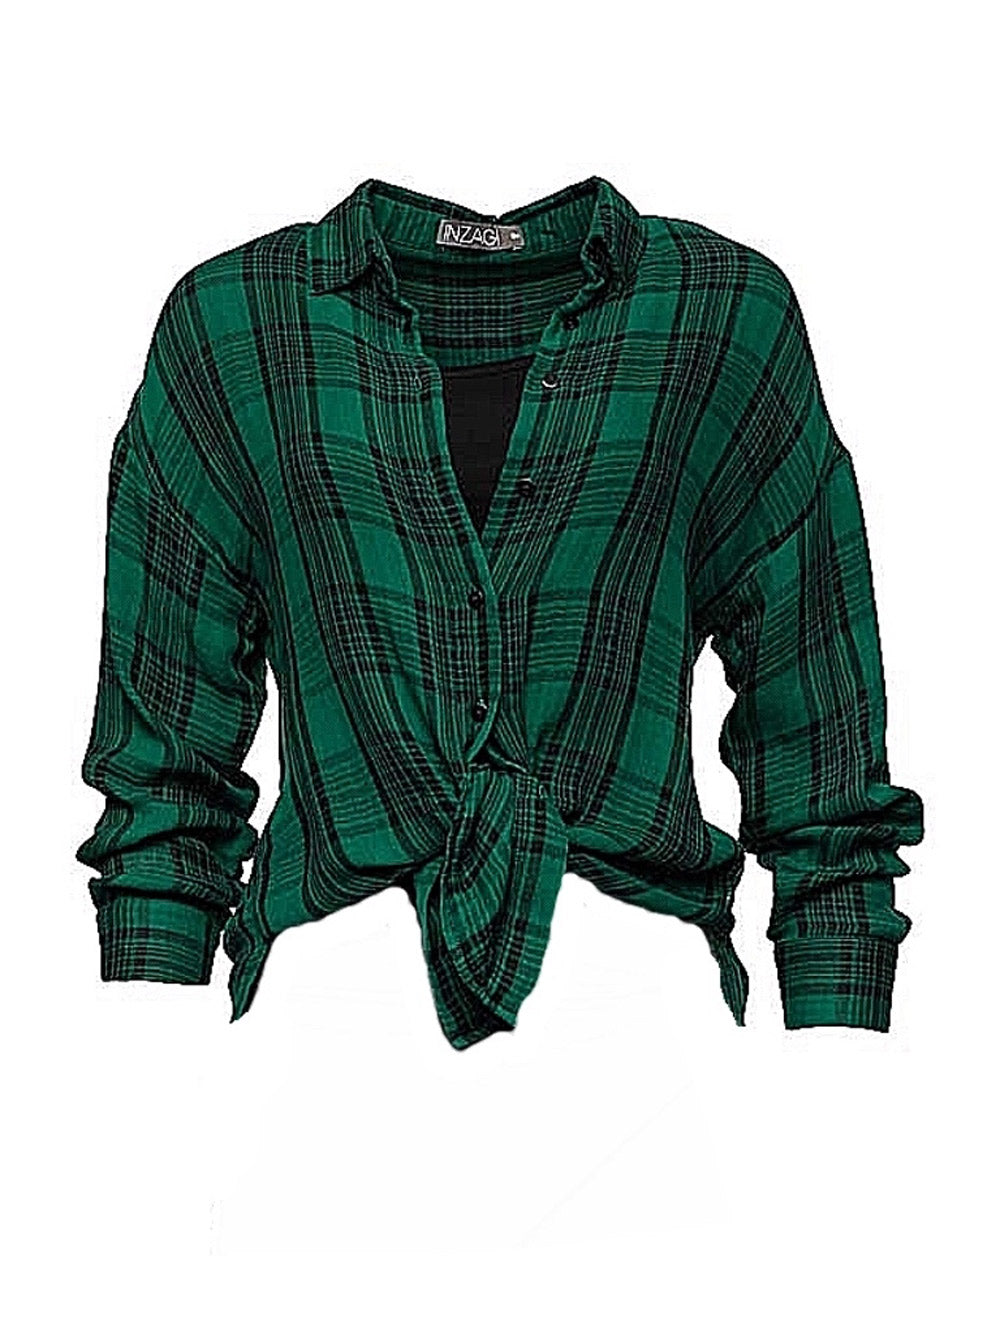 INZAGI Charlotte Check Shirt - Green